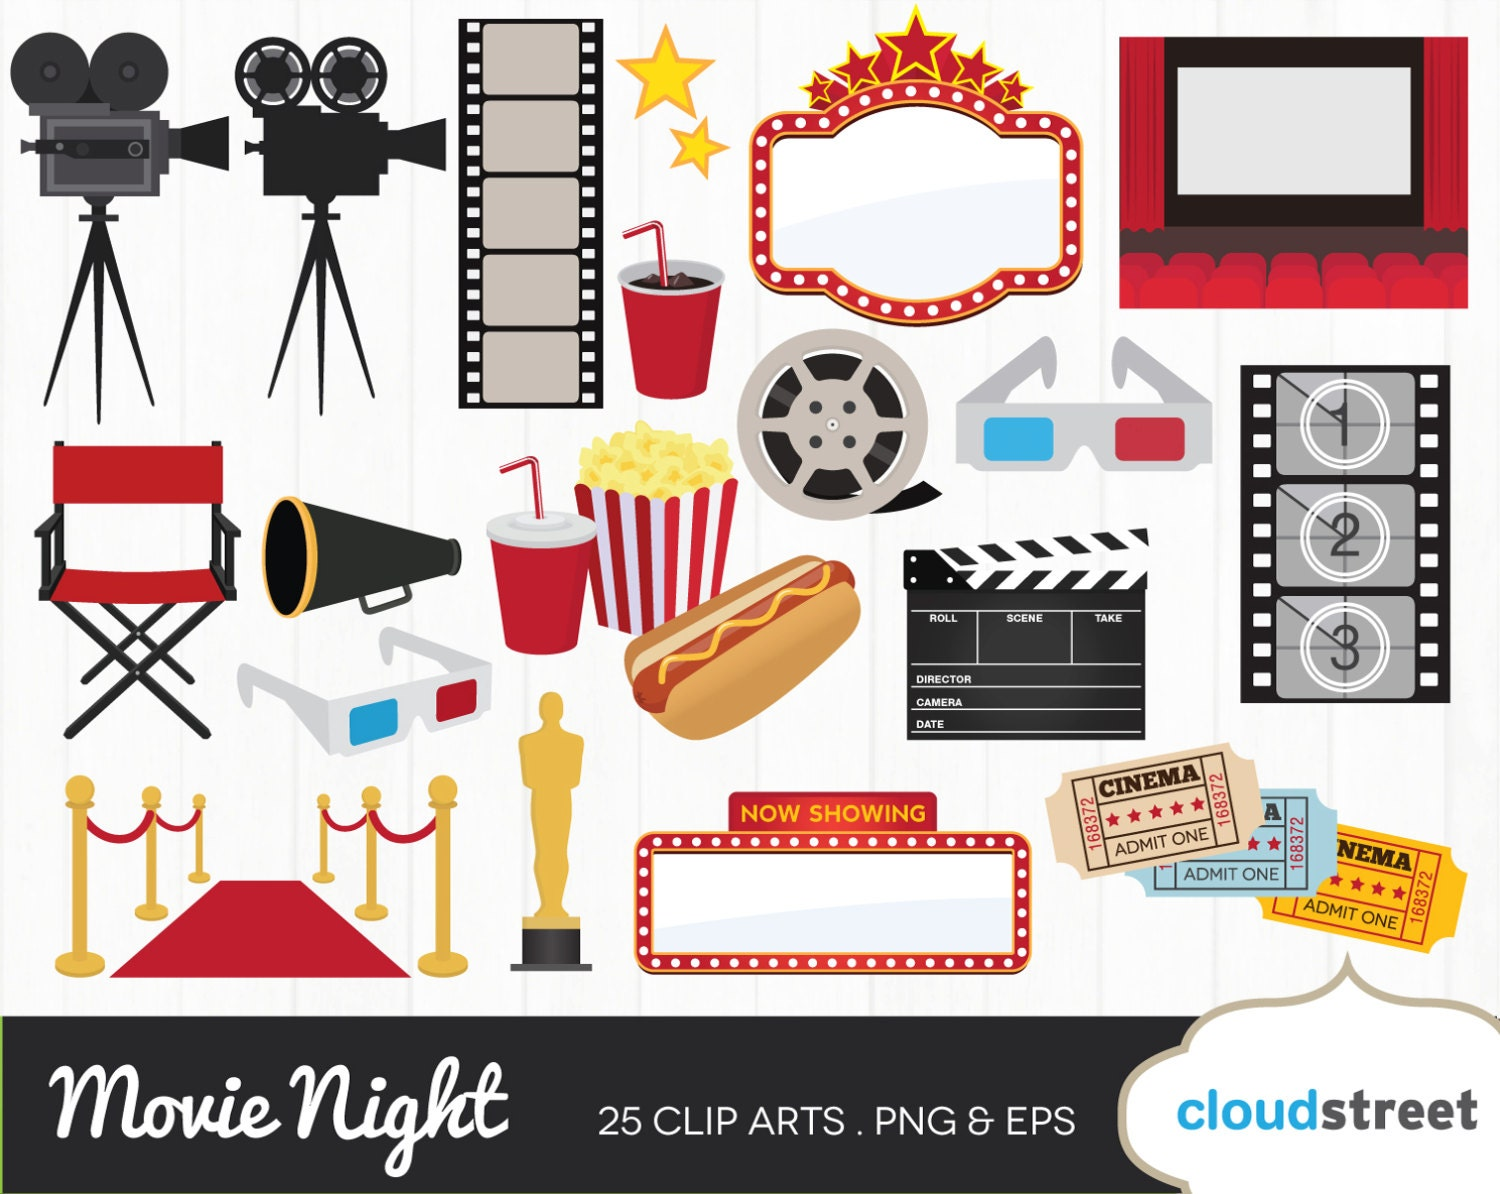 Cinema clipart  20% OFF movie night clipart / movie theater clip art / cinema